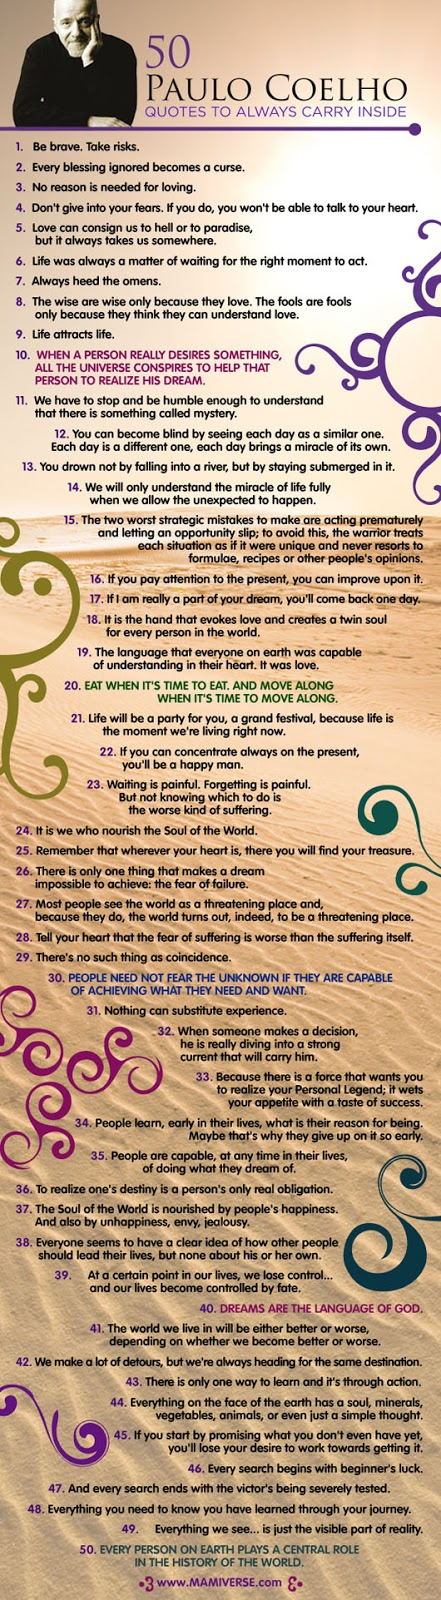 50 Paulo Coelho Inspirational And Motivational Quotes - BOOKS